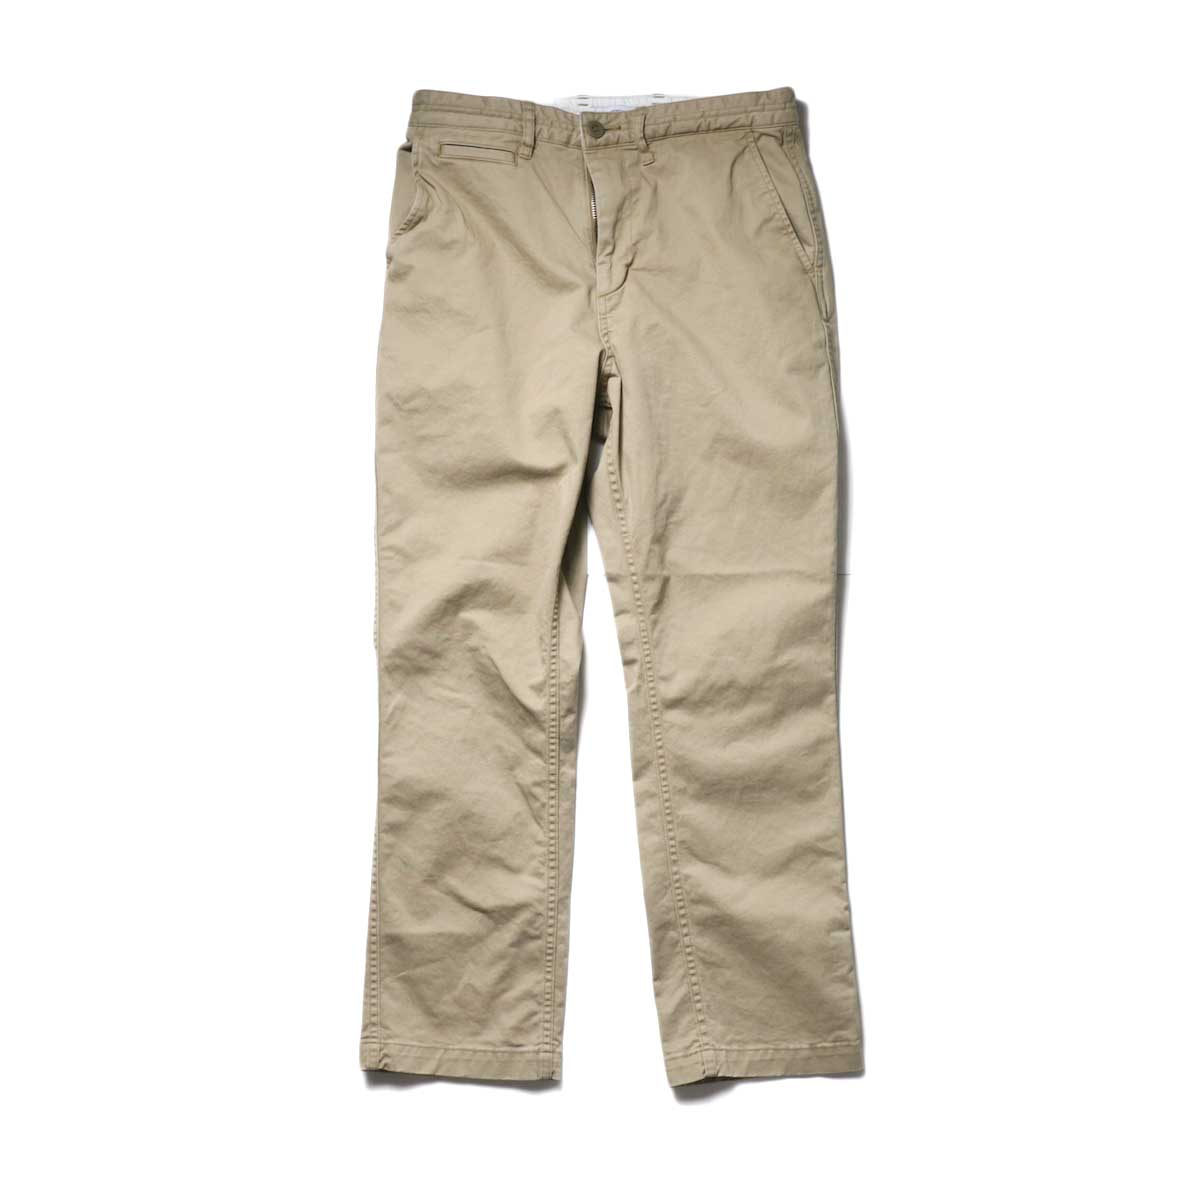 nonnative / DWELLER CHINO TROUSERS USUAL FIT C/P TWILL STRETCH VW (Beige)